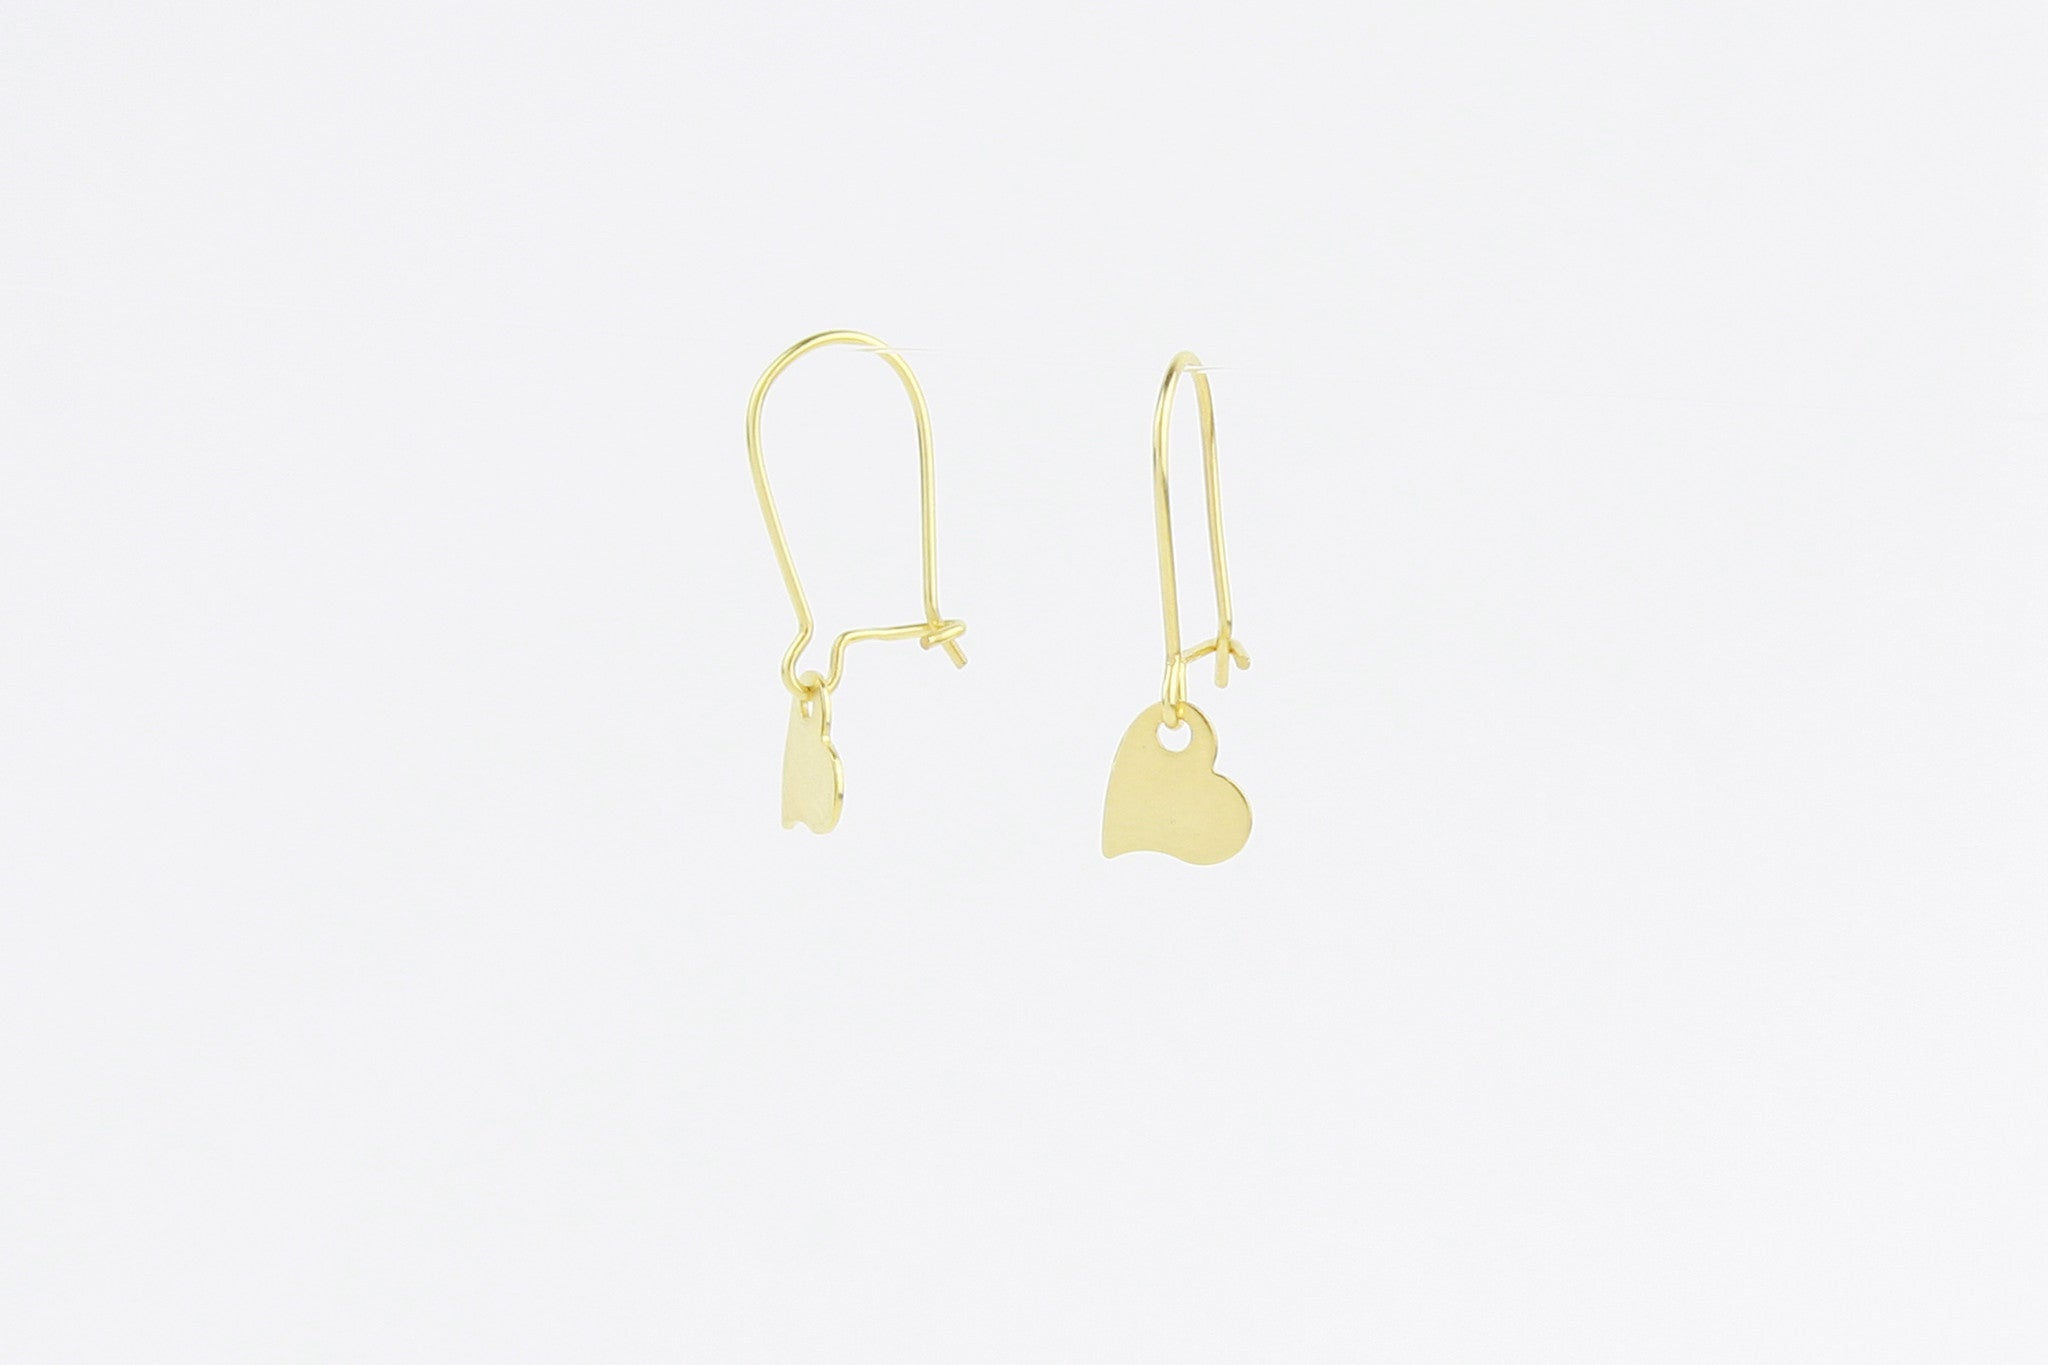 jewelberry ohrringe earrings my love yellow gold plated sterling silver fine jewelry handmade with love fairtrade